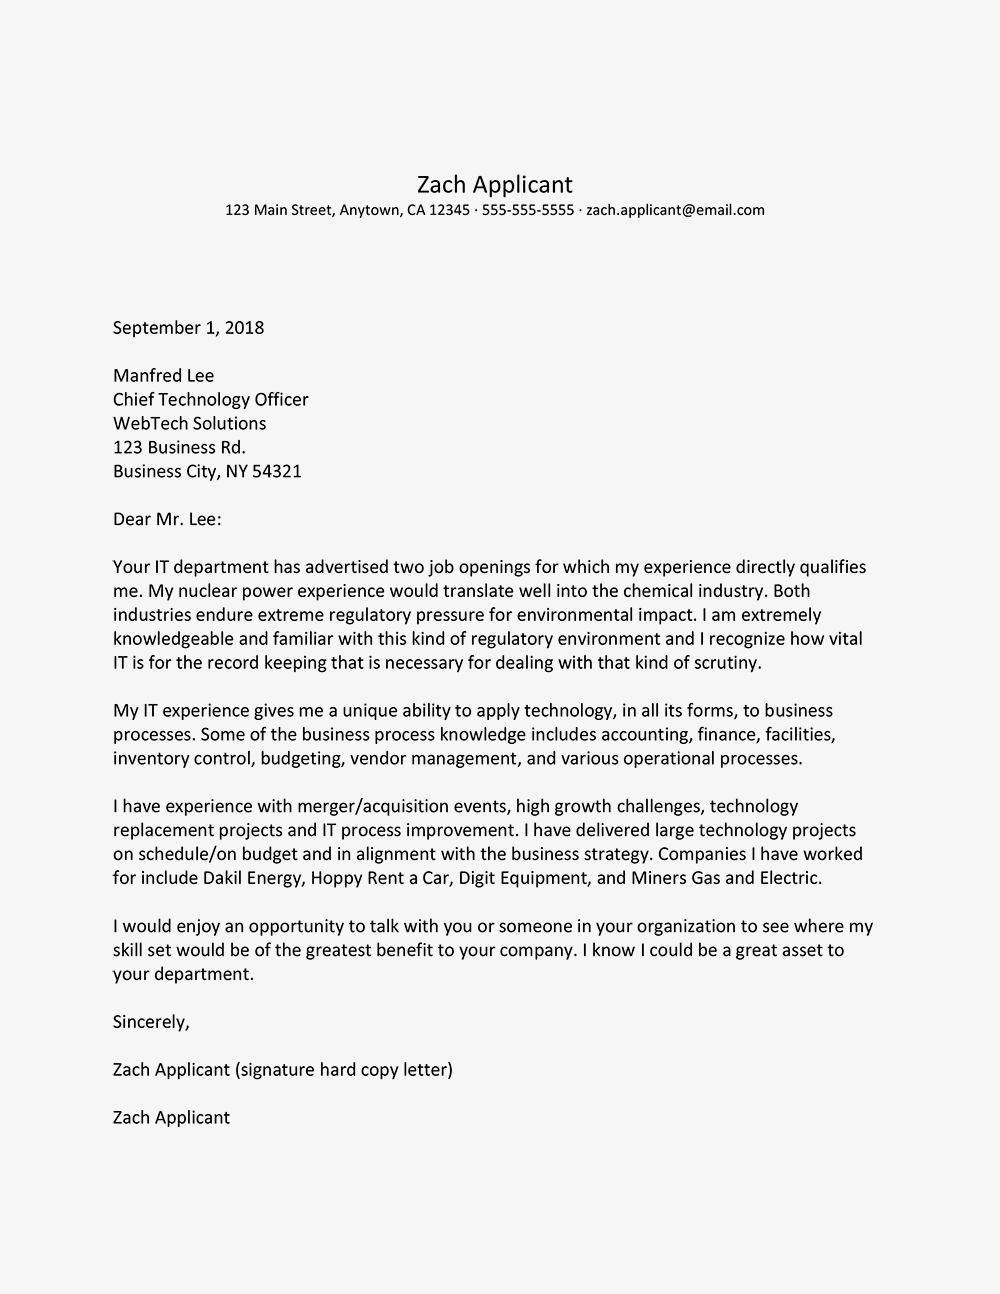 applying for more than one job  use this cover letter example